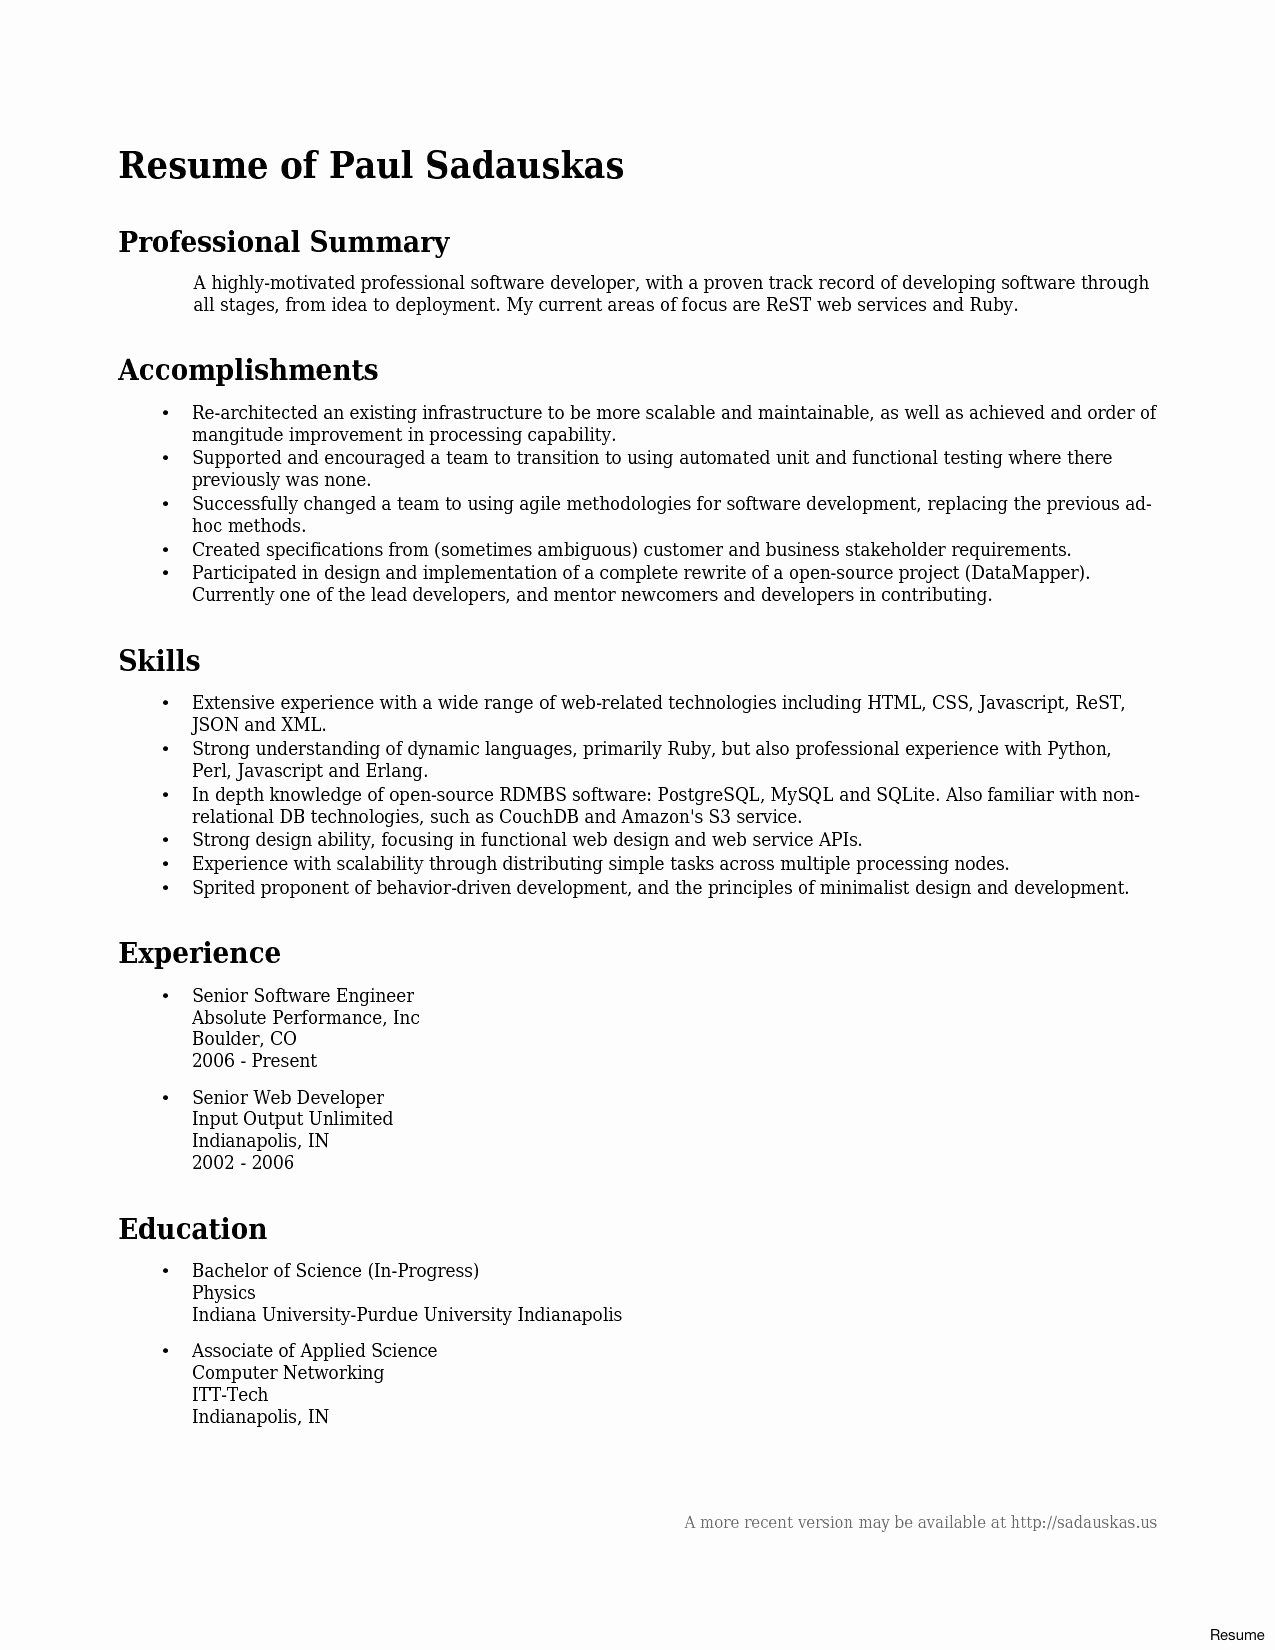 25 Junior Web Developer Resume in 2020 Resume summary